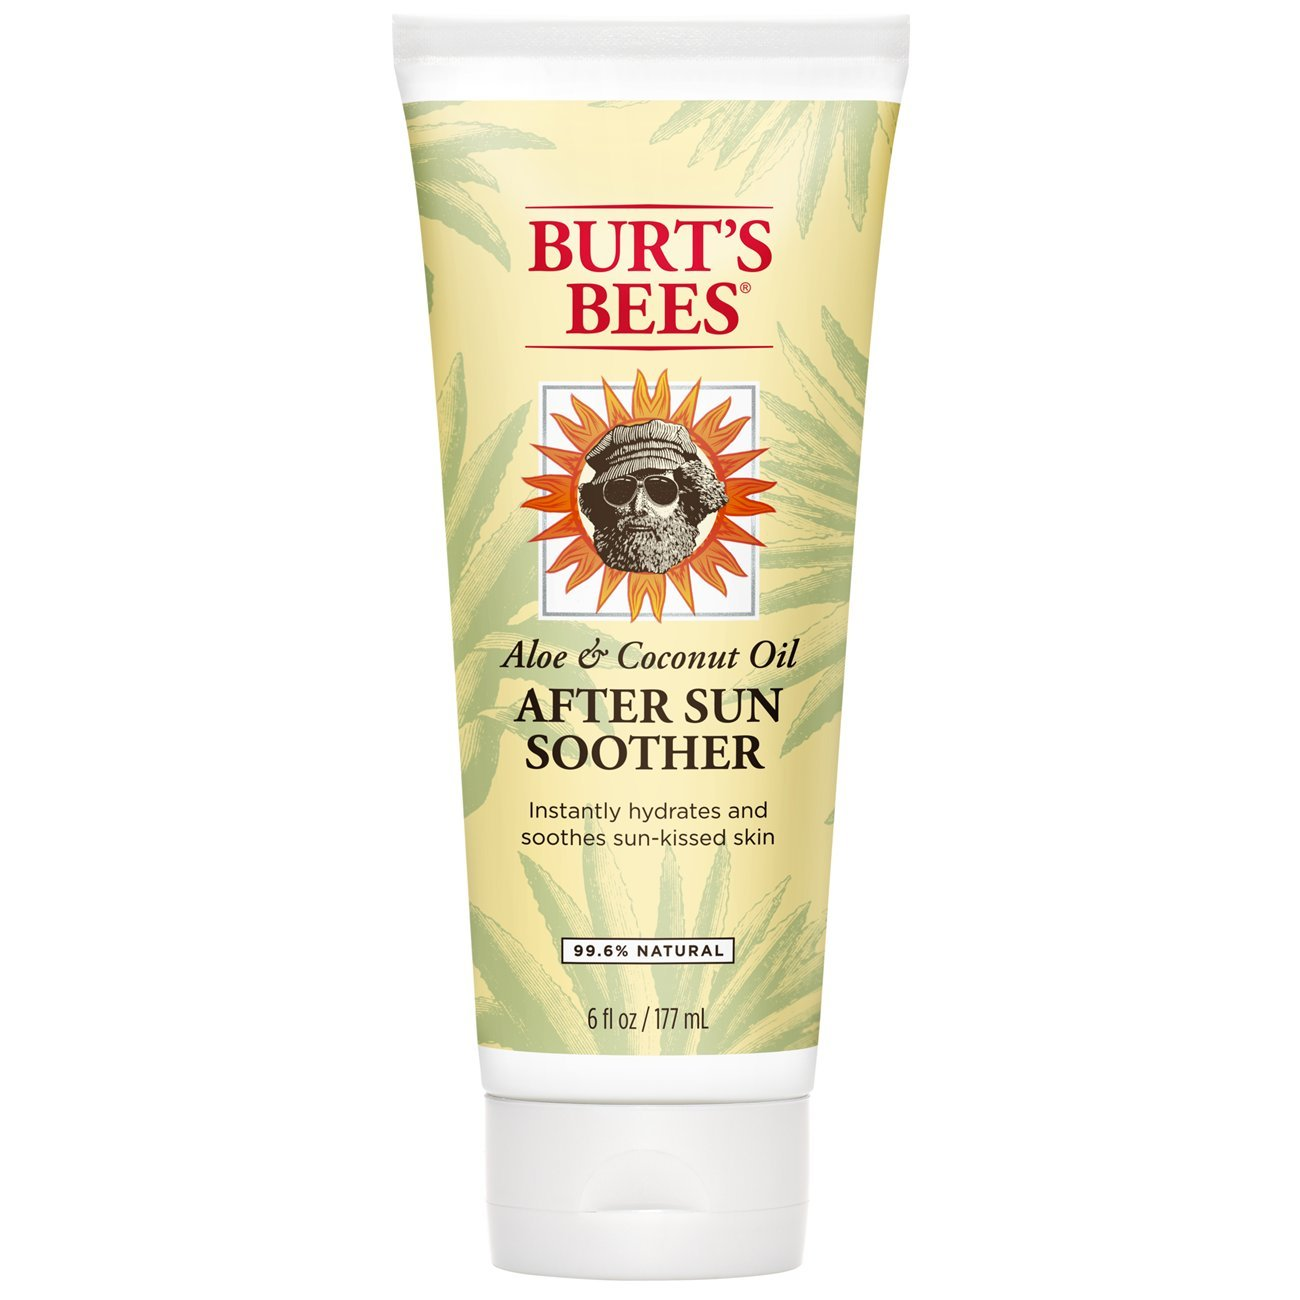 Burt's Bees Aloe and Coconut Oil After Sun Soother